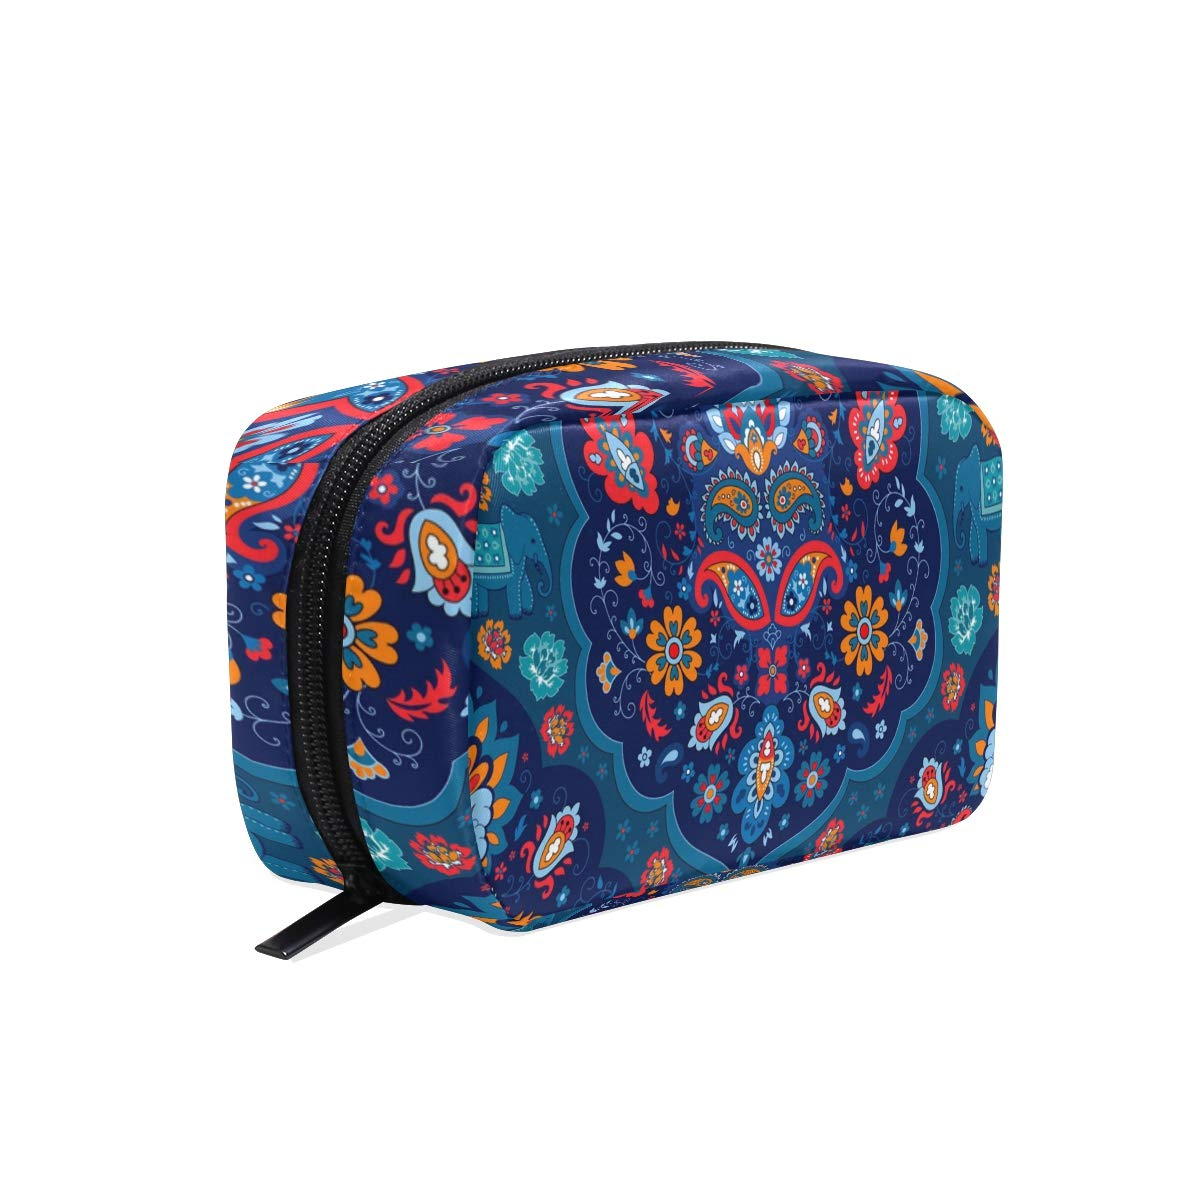 Makeup Bag Portable Travel Cosmetic Train Case Indian Rug Paisley Ornament Pattern Toiletry Bag Organizer Accessories Case Tools Case for Beauty Women